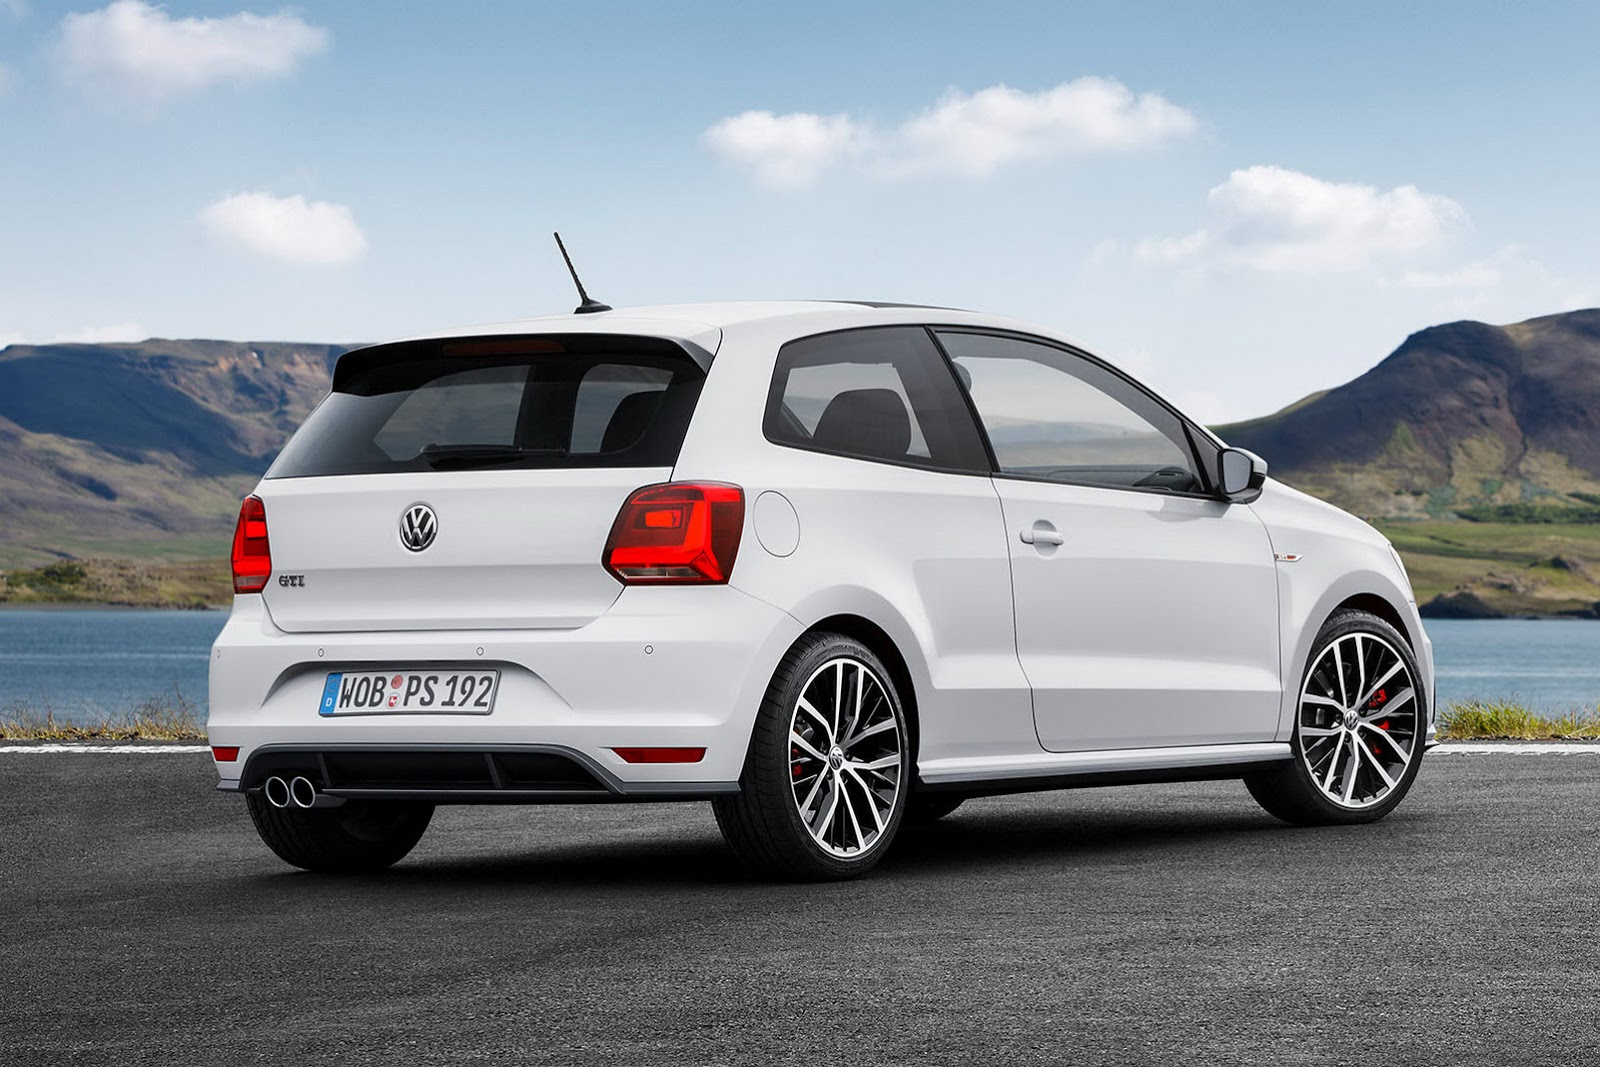 2015 volkswagen polo gti revealed motoroids. Black Bedroom Furniture Sets. Home Design Ideas